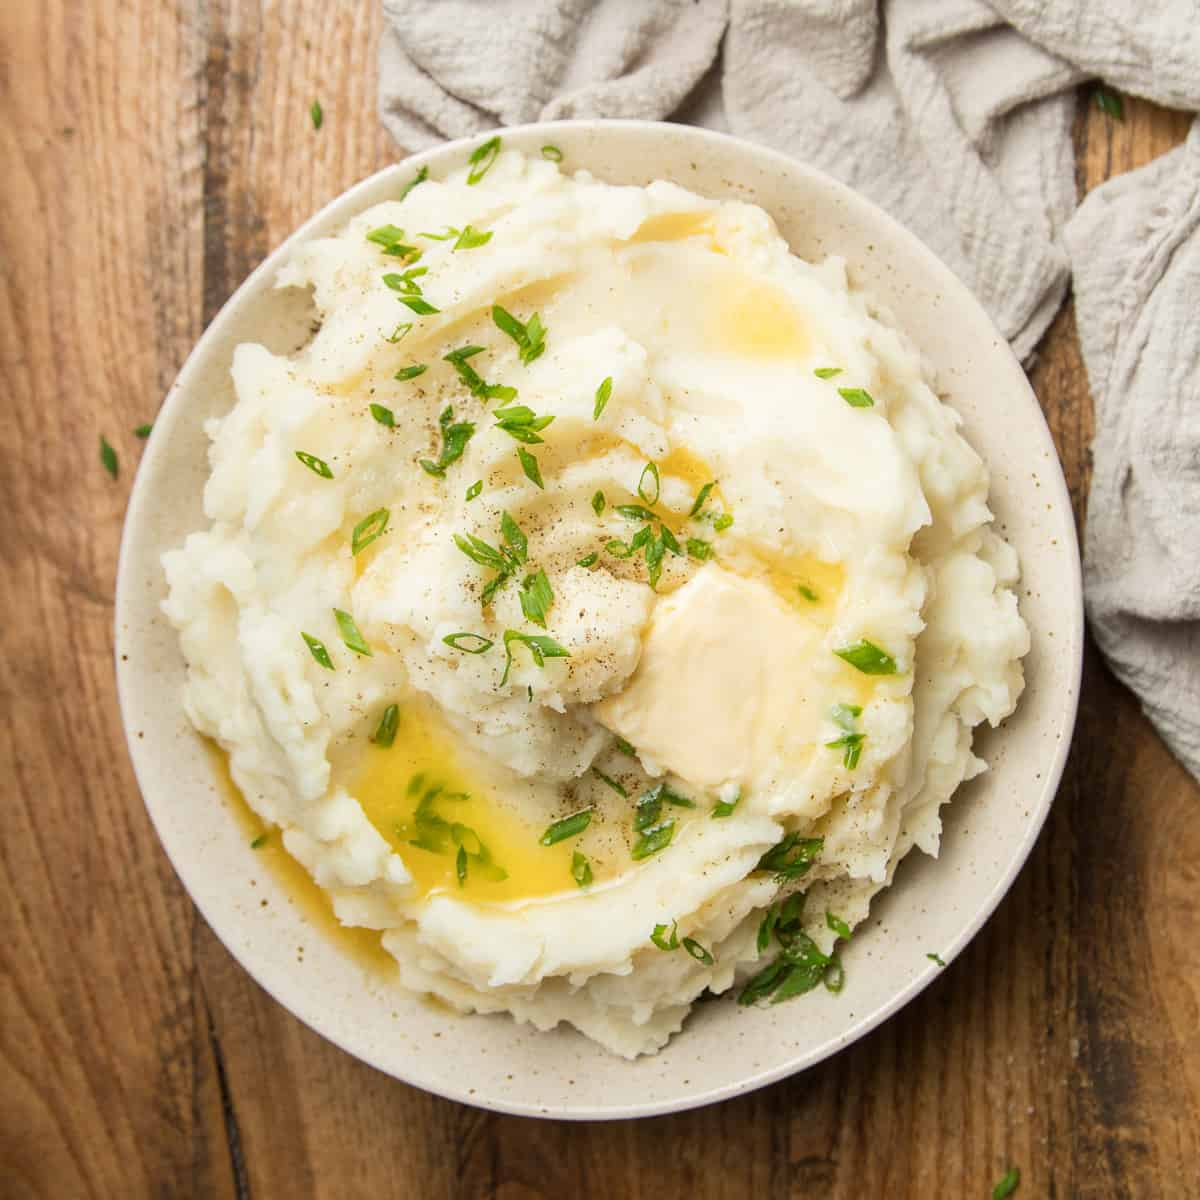 Bowl of Vegan Mashed Potatoes Topped with Butter and Chives.